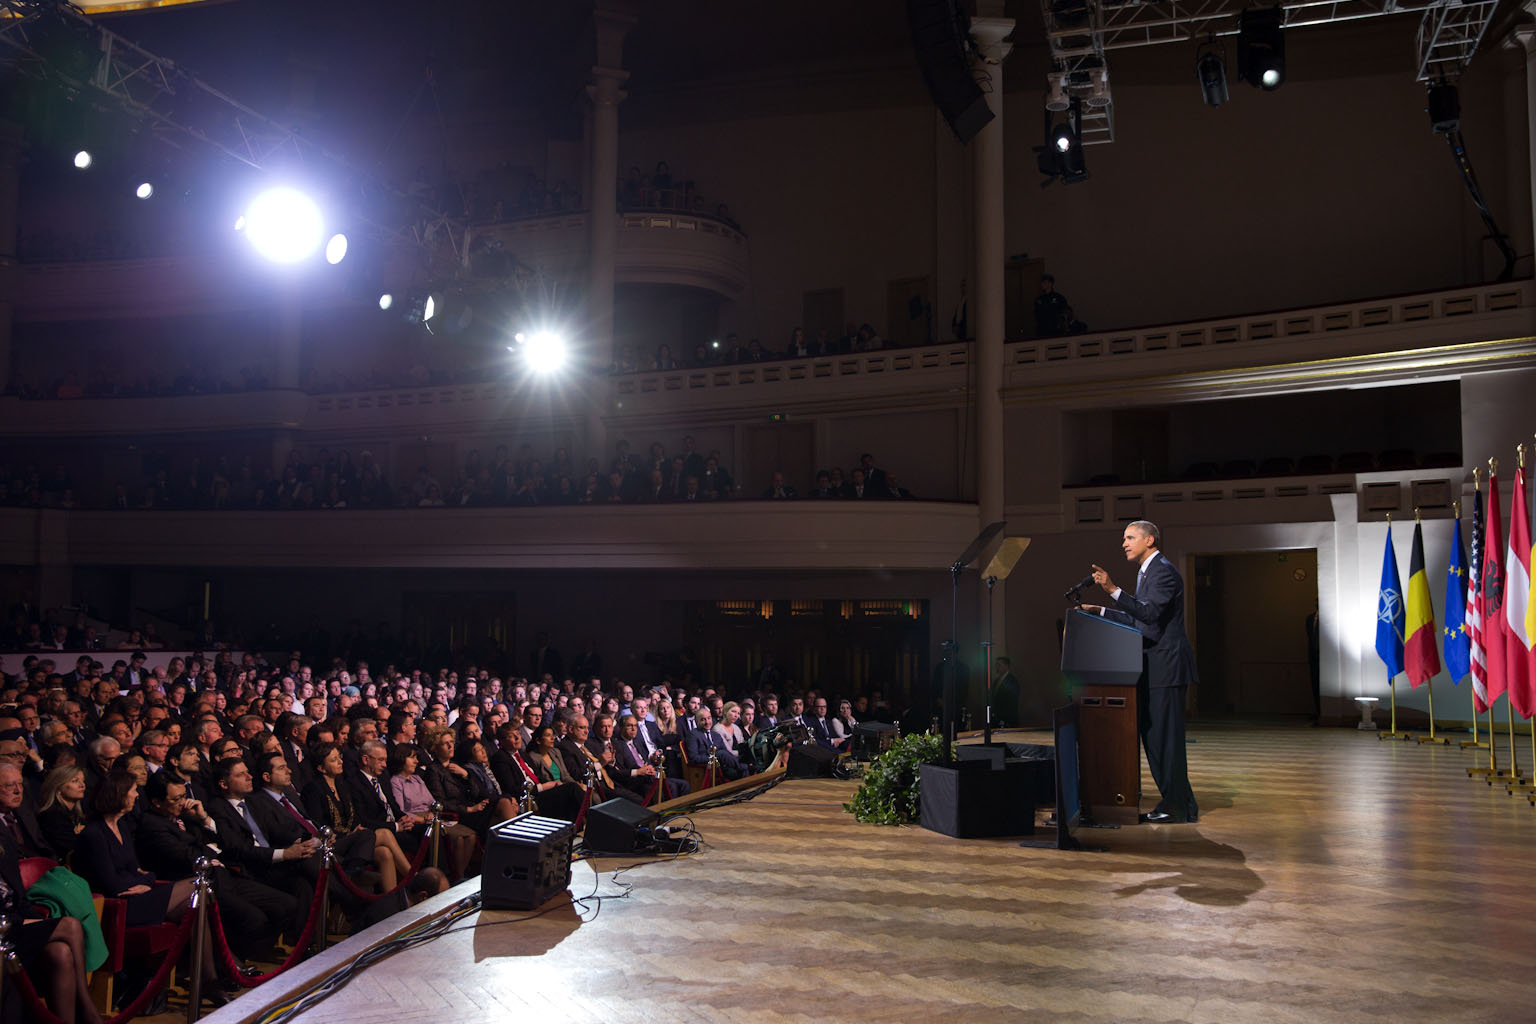 President Barack Obama delivers remarks at the Palais Des Beaux Arts (BOZAR) in Brussels, Belgium, March 26, 2014.